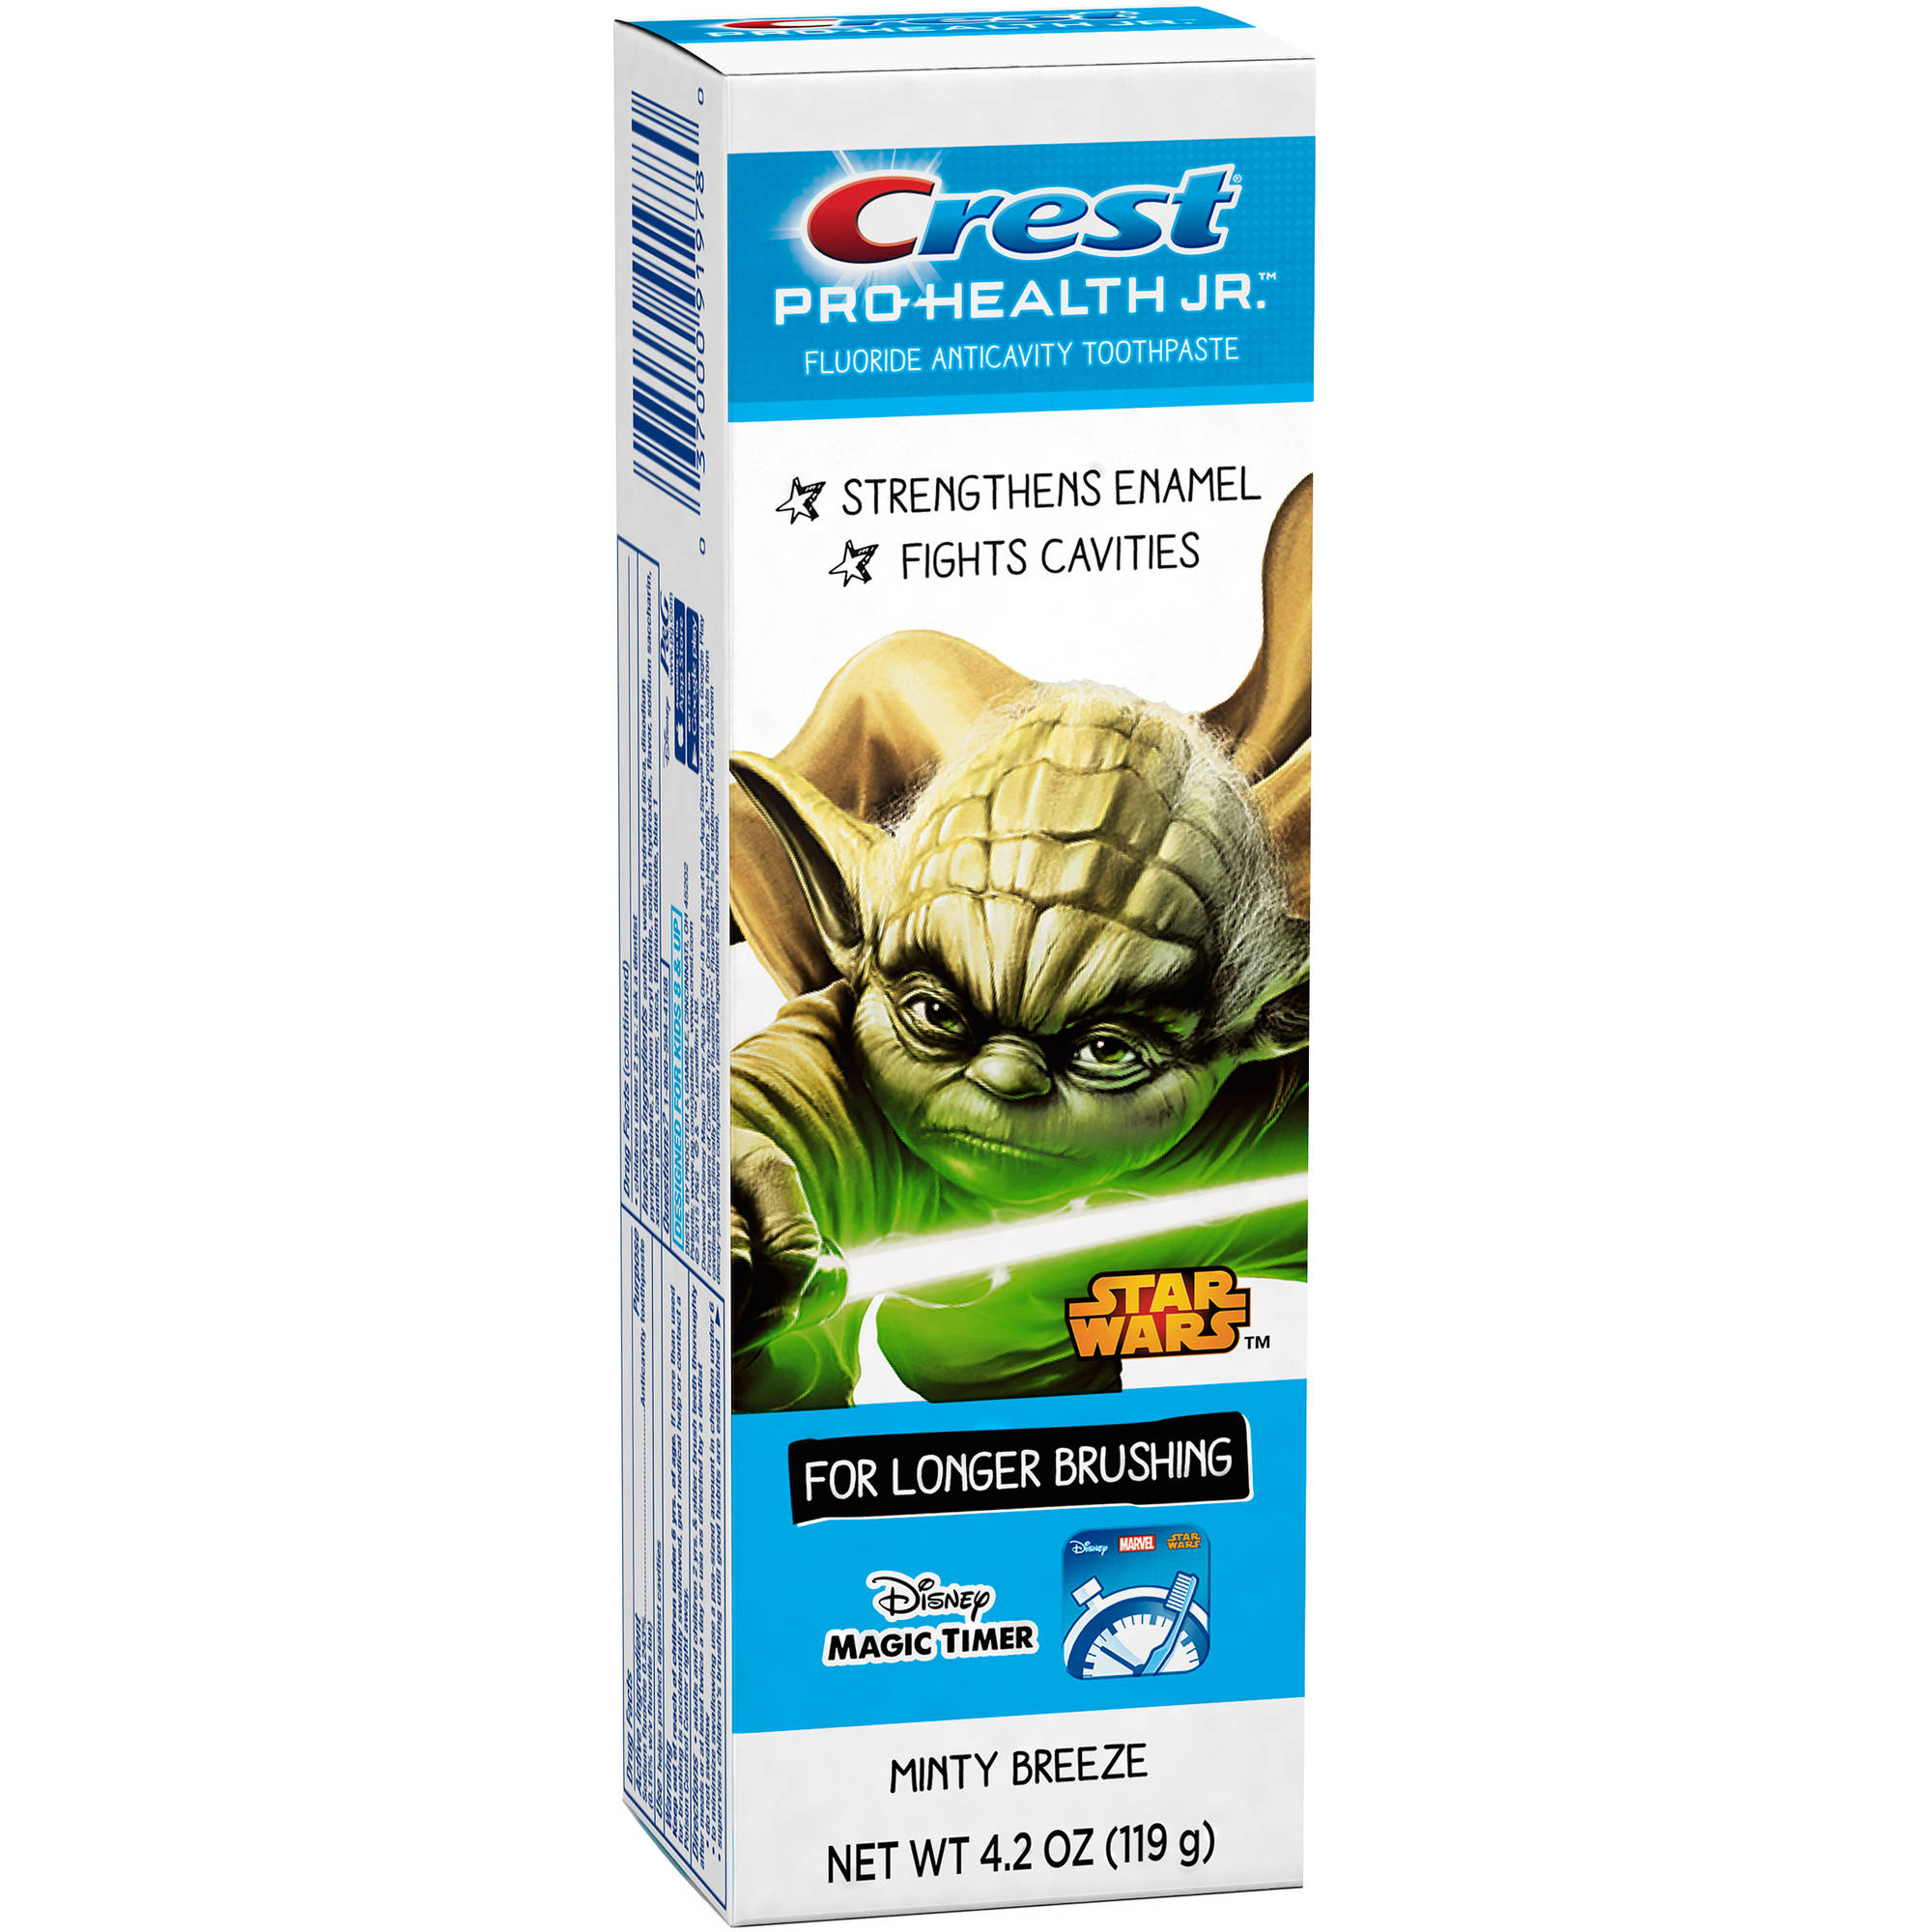 Crest Pro-Health Jr. Star Wars Kids Minty Breeze Fluoride Anticavity Toothpaste, 4.2 oz